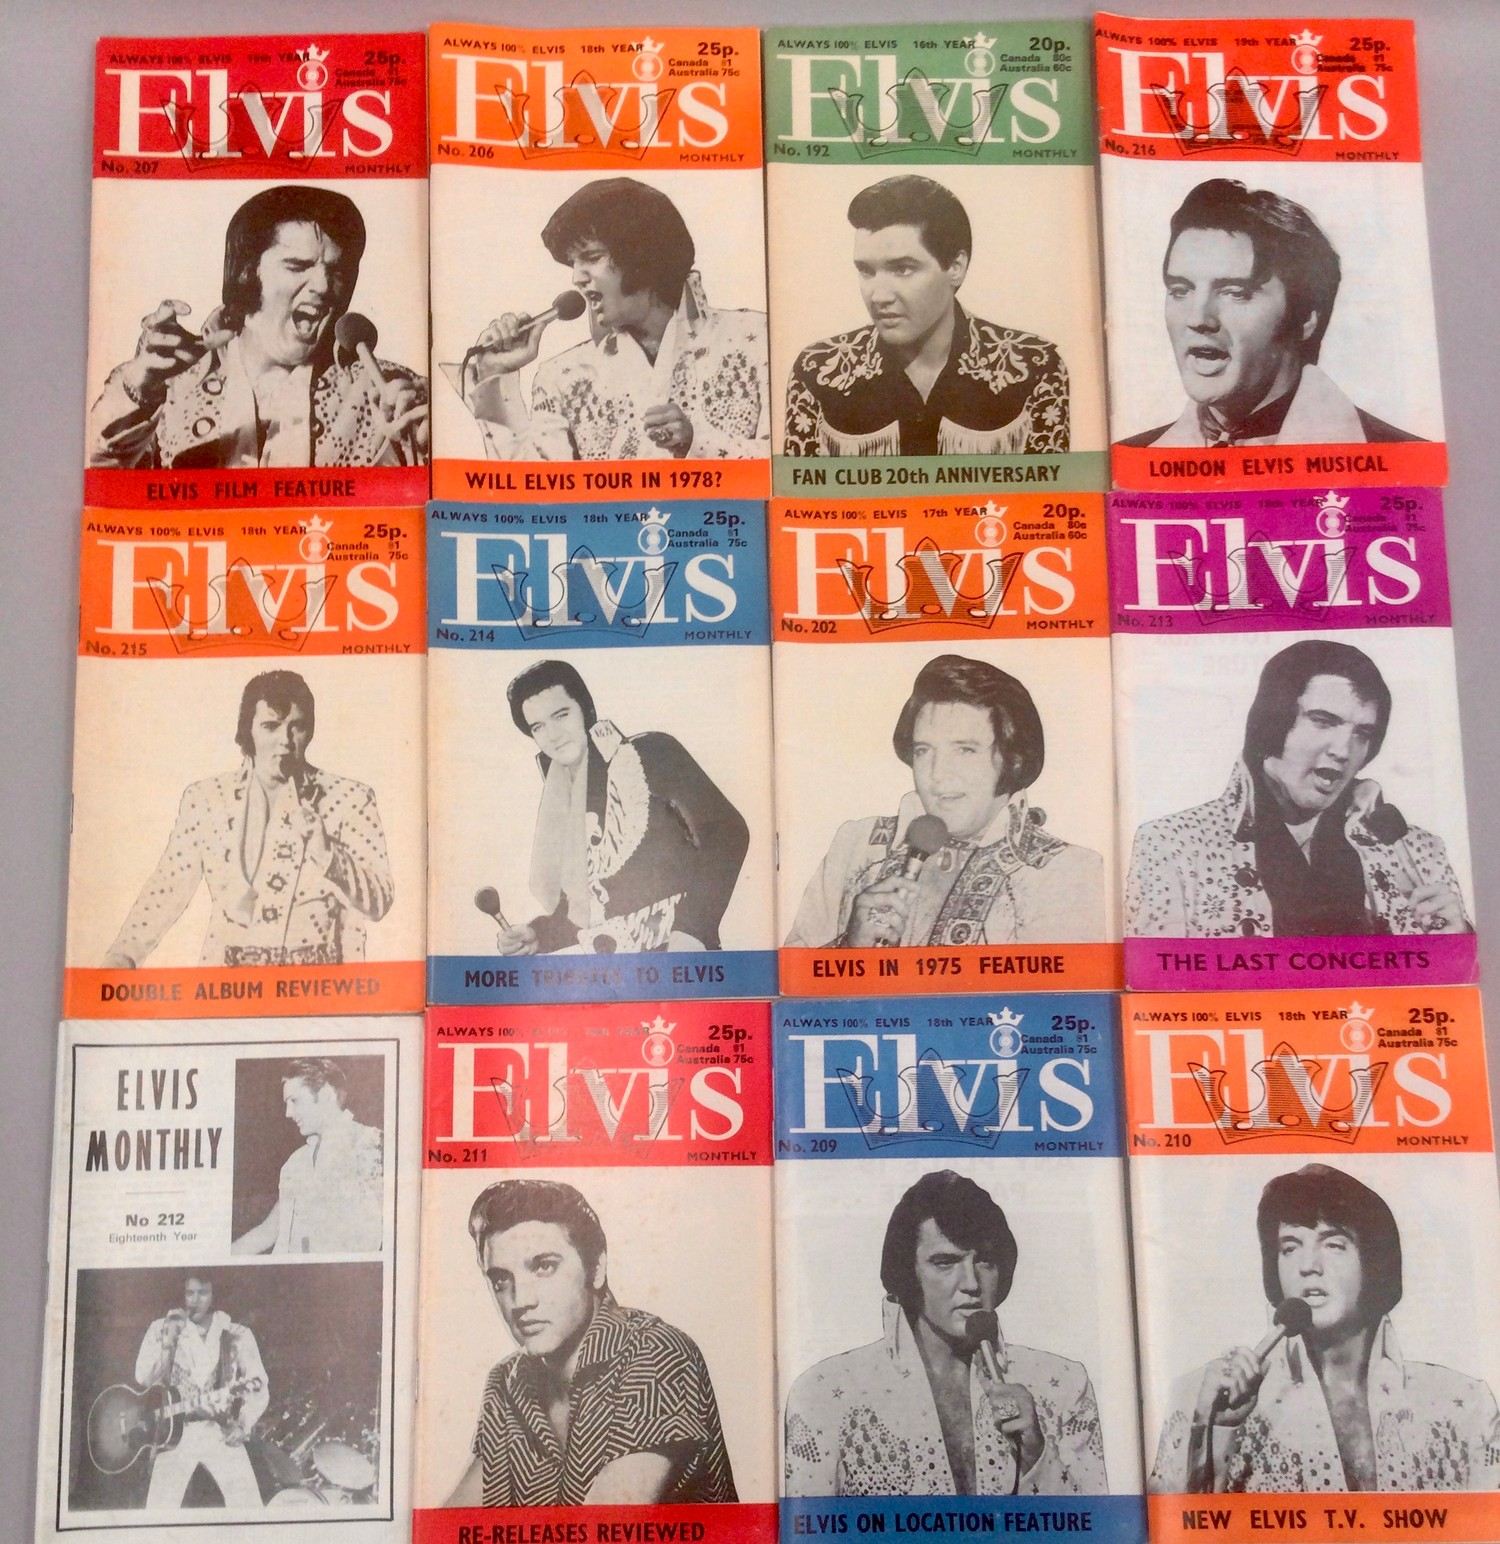 ELVIS PRESLEY COLLECTION OF FAN MAGAZINES. 13 copies of Elvis Mail mags - 27 copies of Elvis